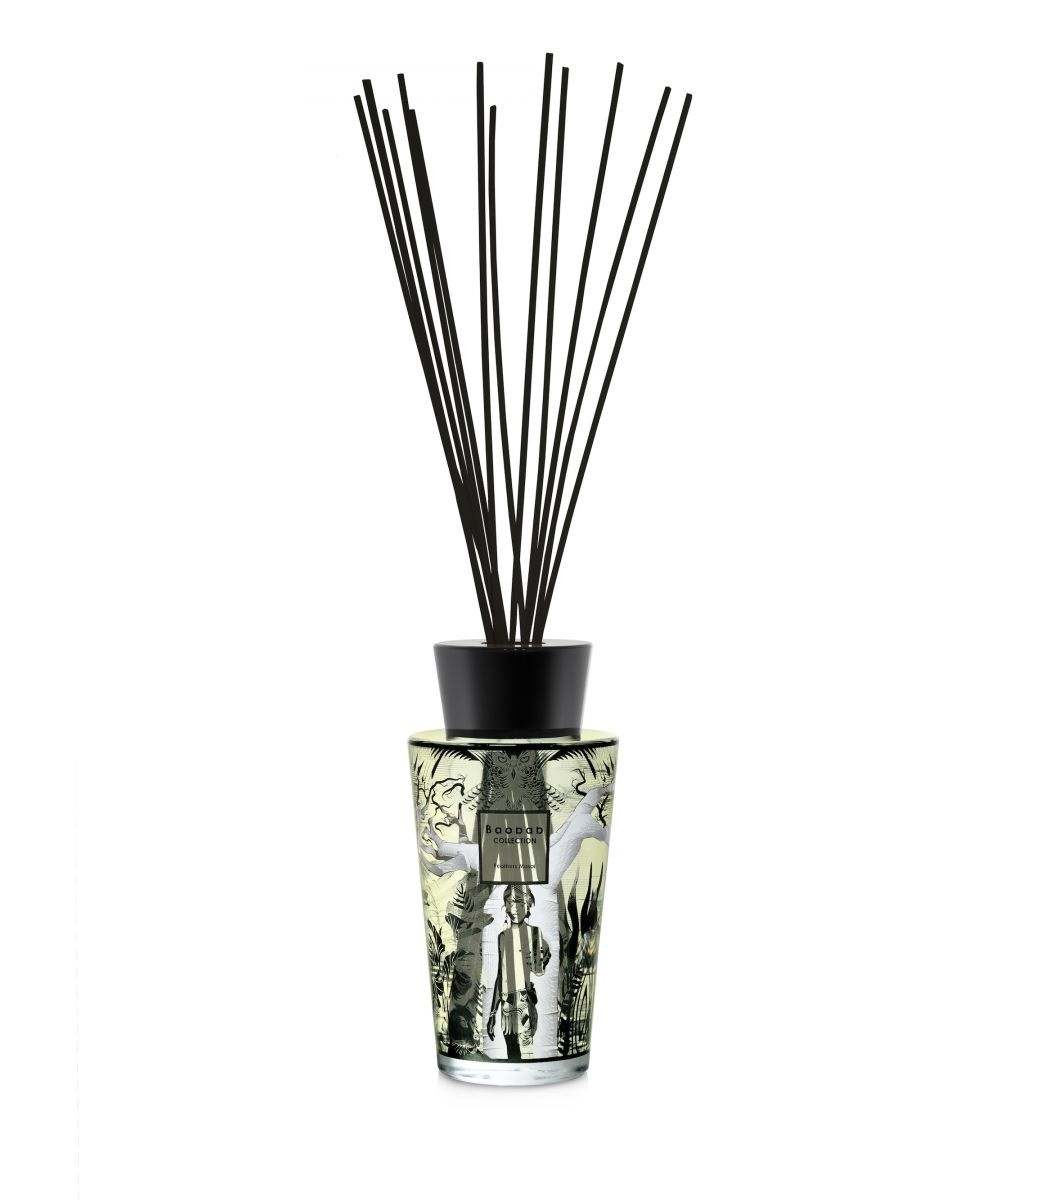 Feathers diffuser